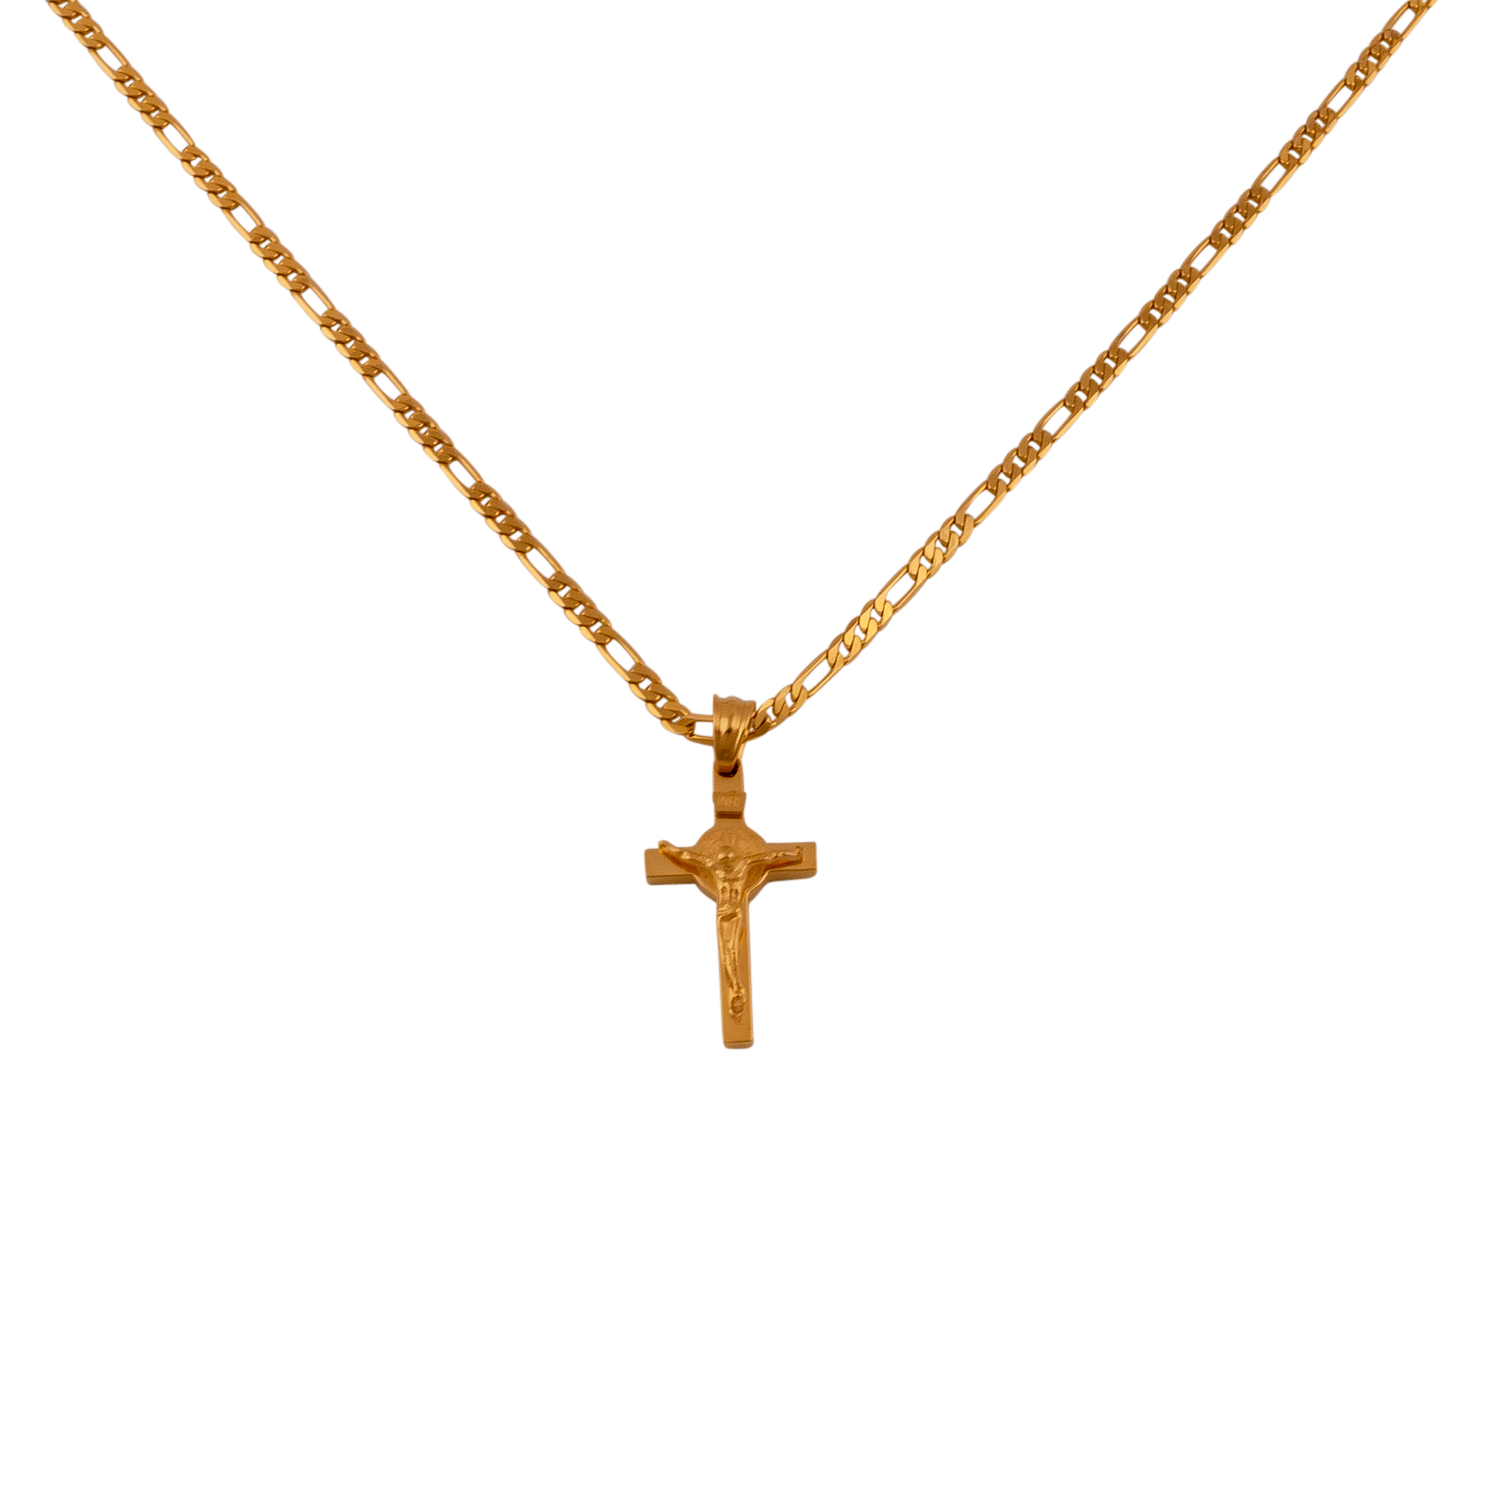 jesuspiece newchain the products jesus mock explicit piece gods necklace pendant gold streetwear